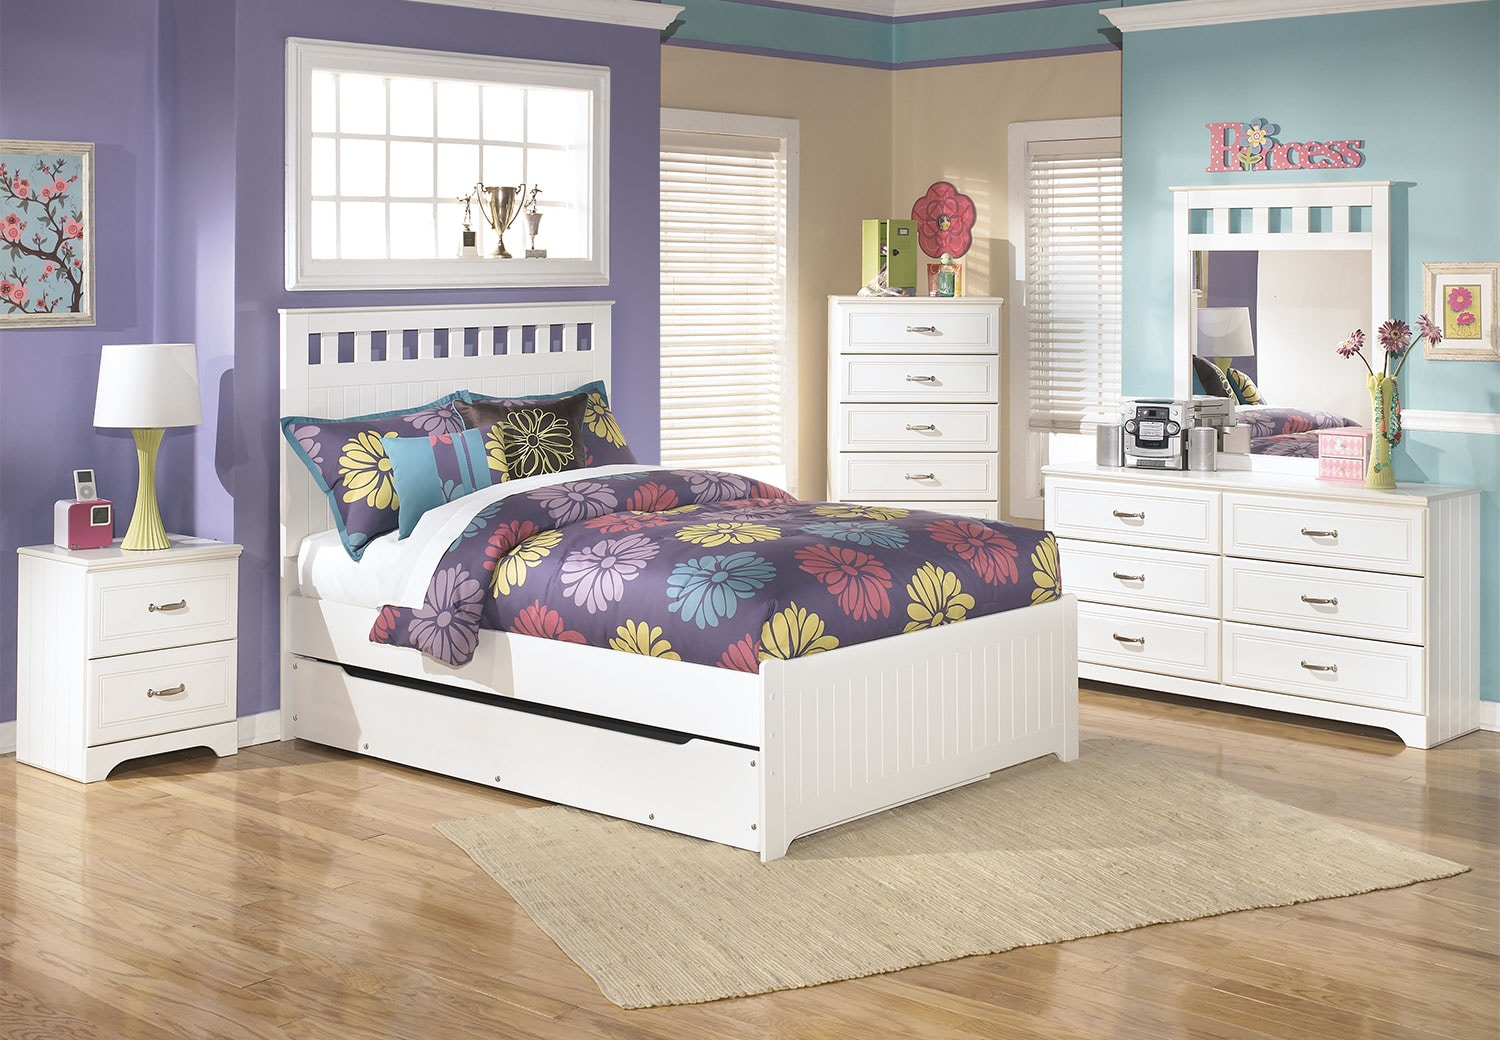 Lulu 7-Piece Full Panel Bed Package with Trundle